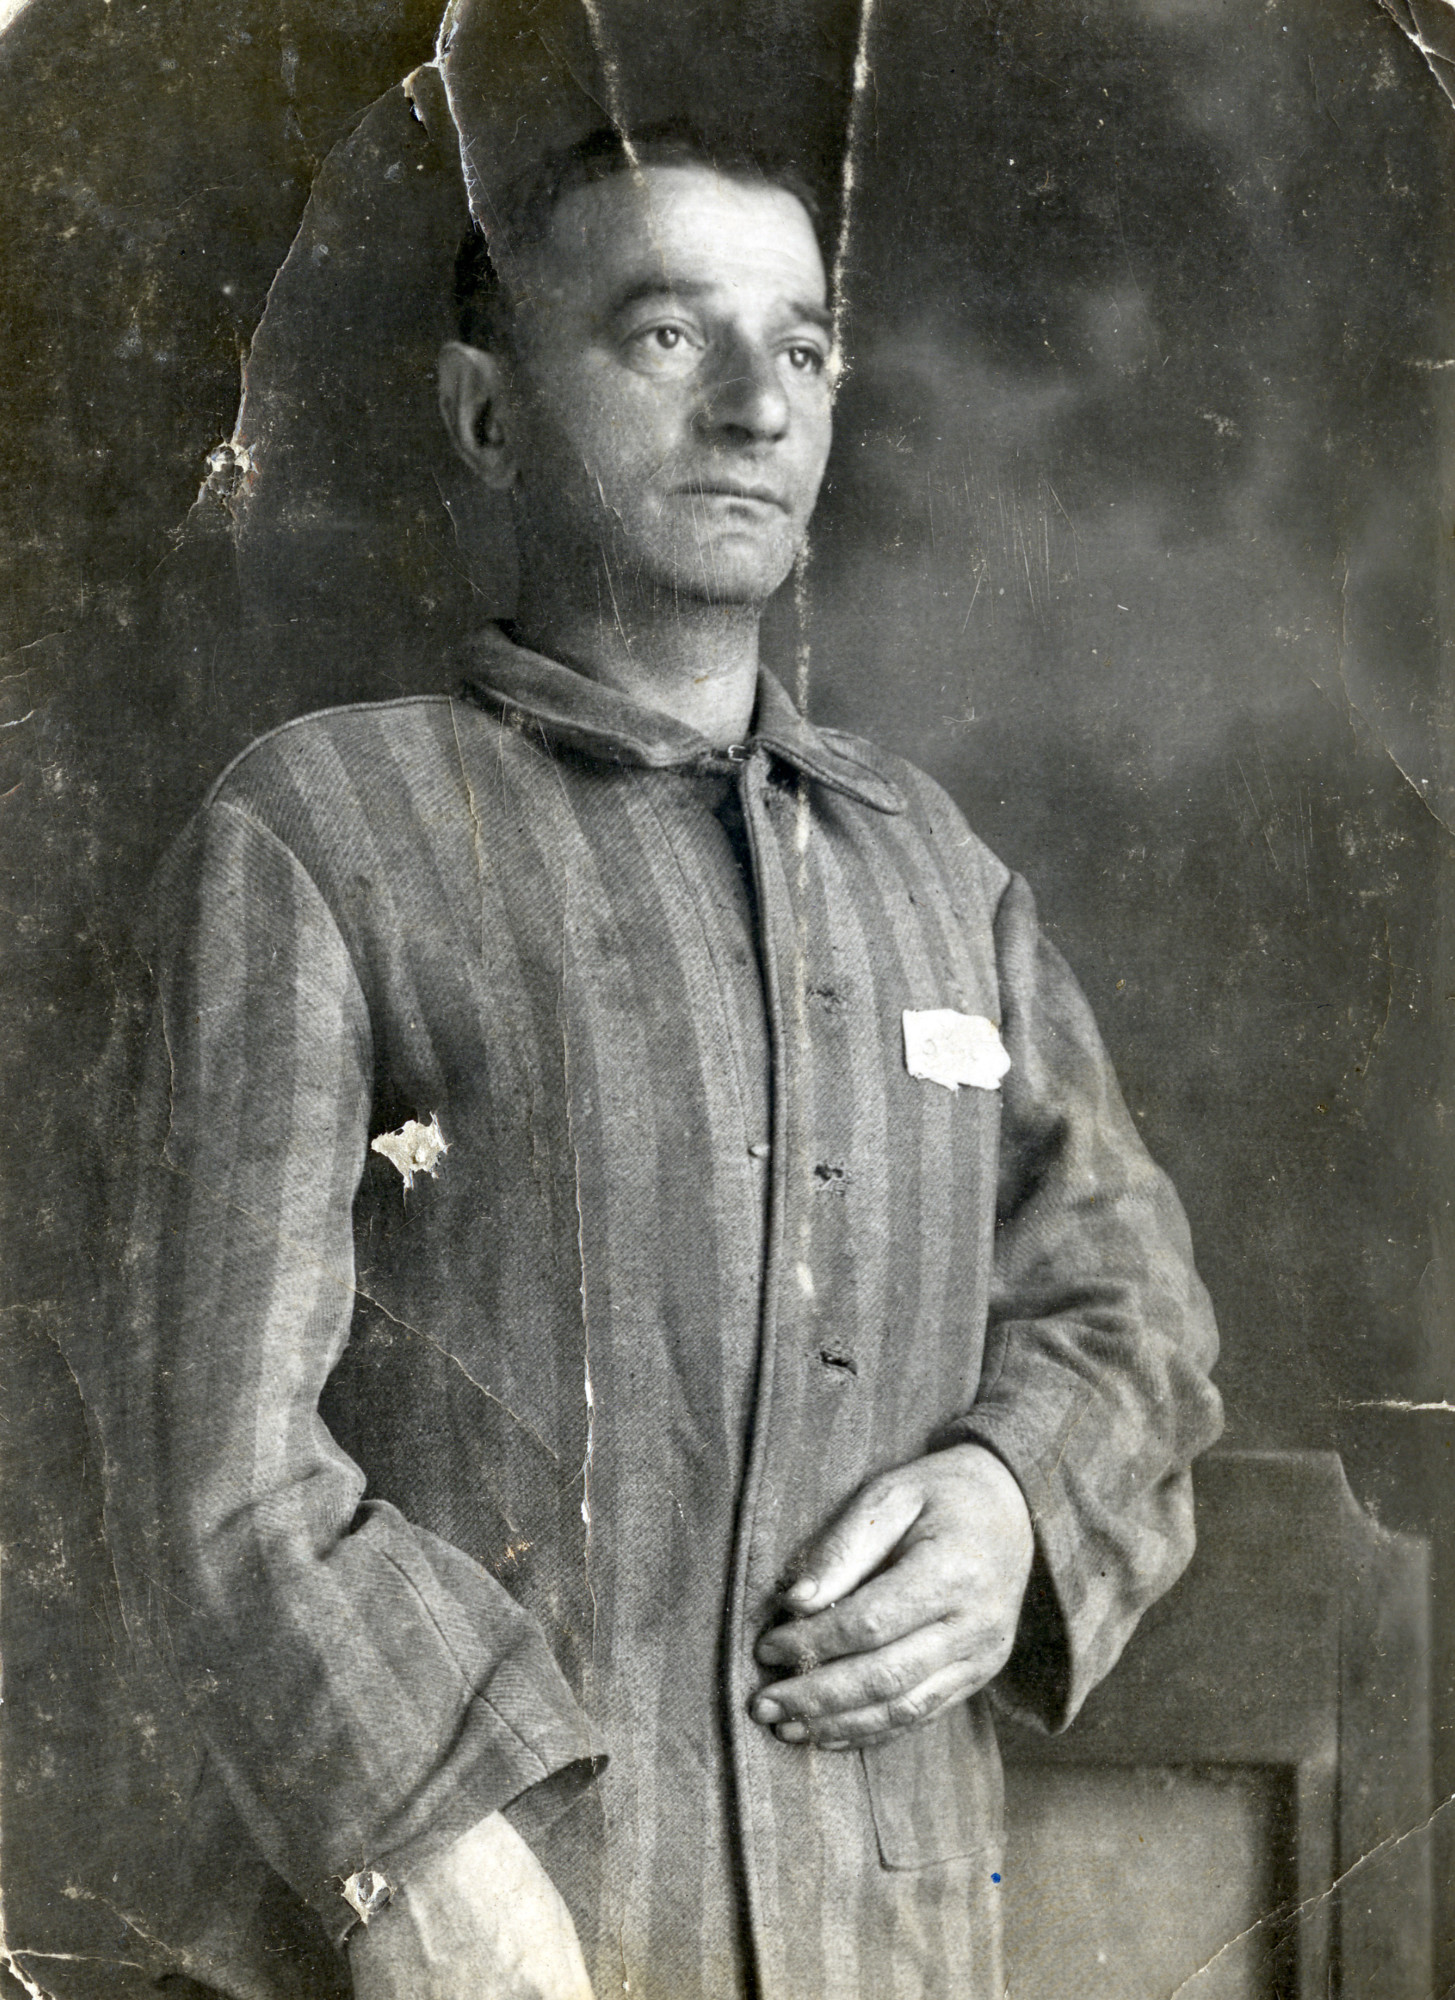 Portrait of Yaakov Michles wearing his prisoner uniform shortly after his liberation from the Dachau concentration camp.